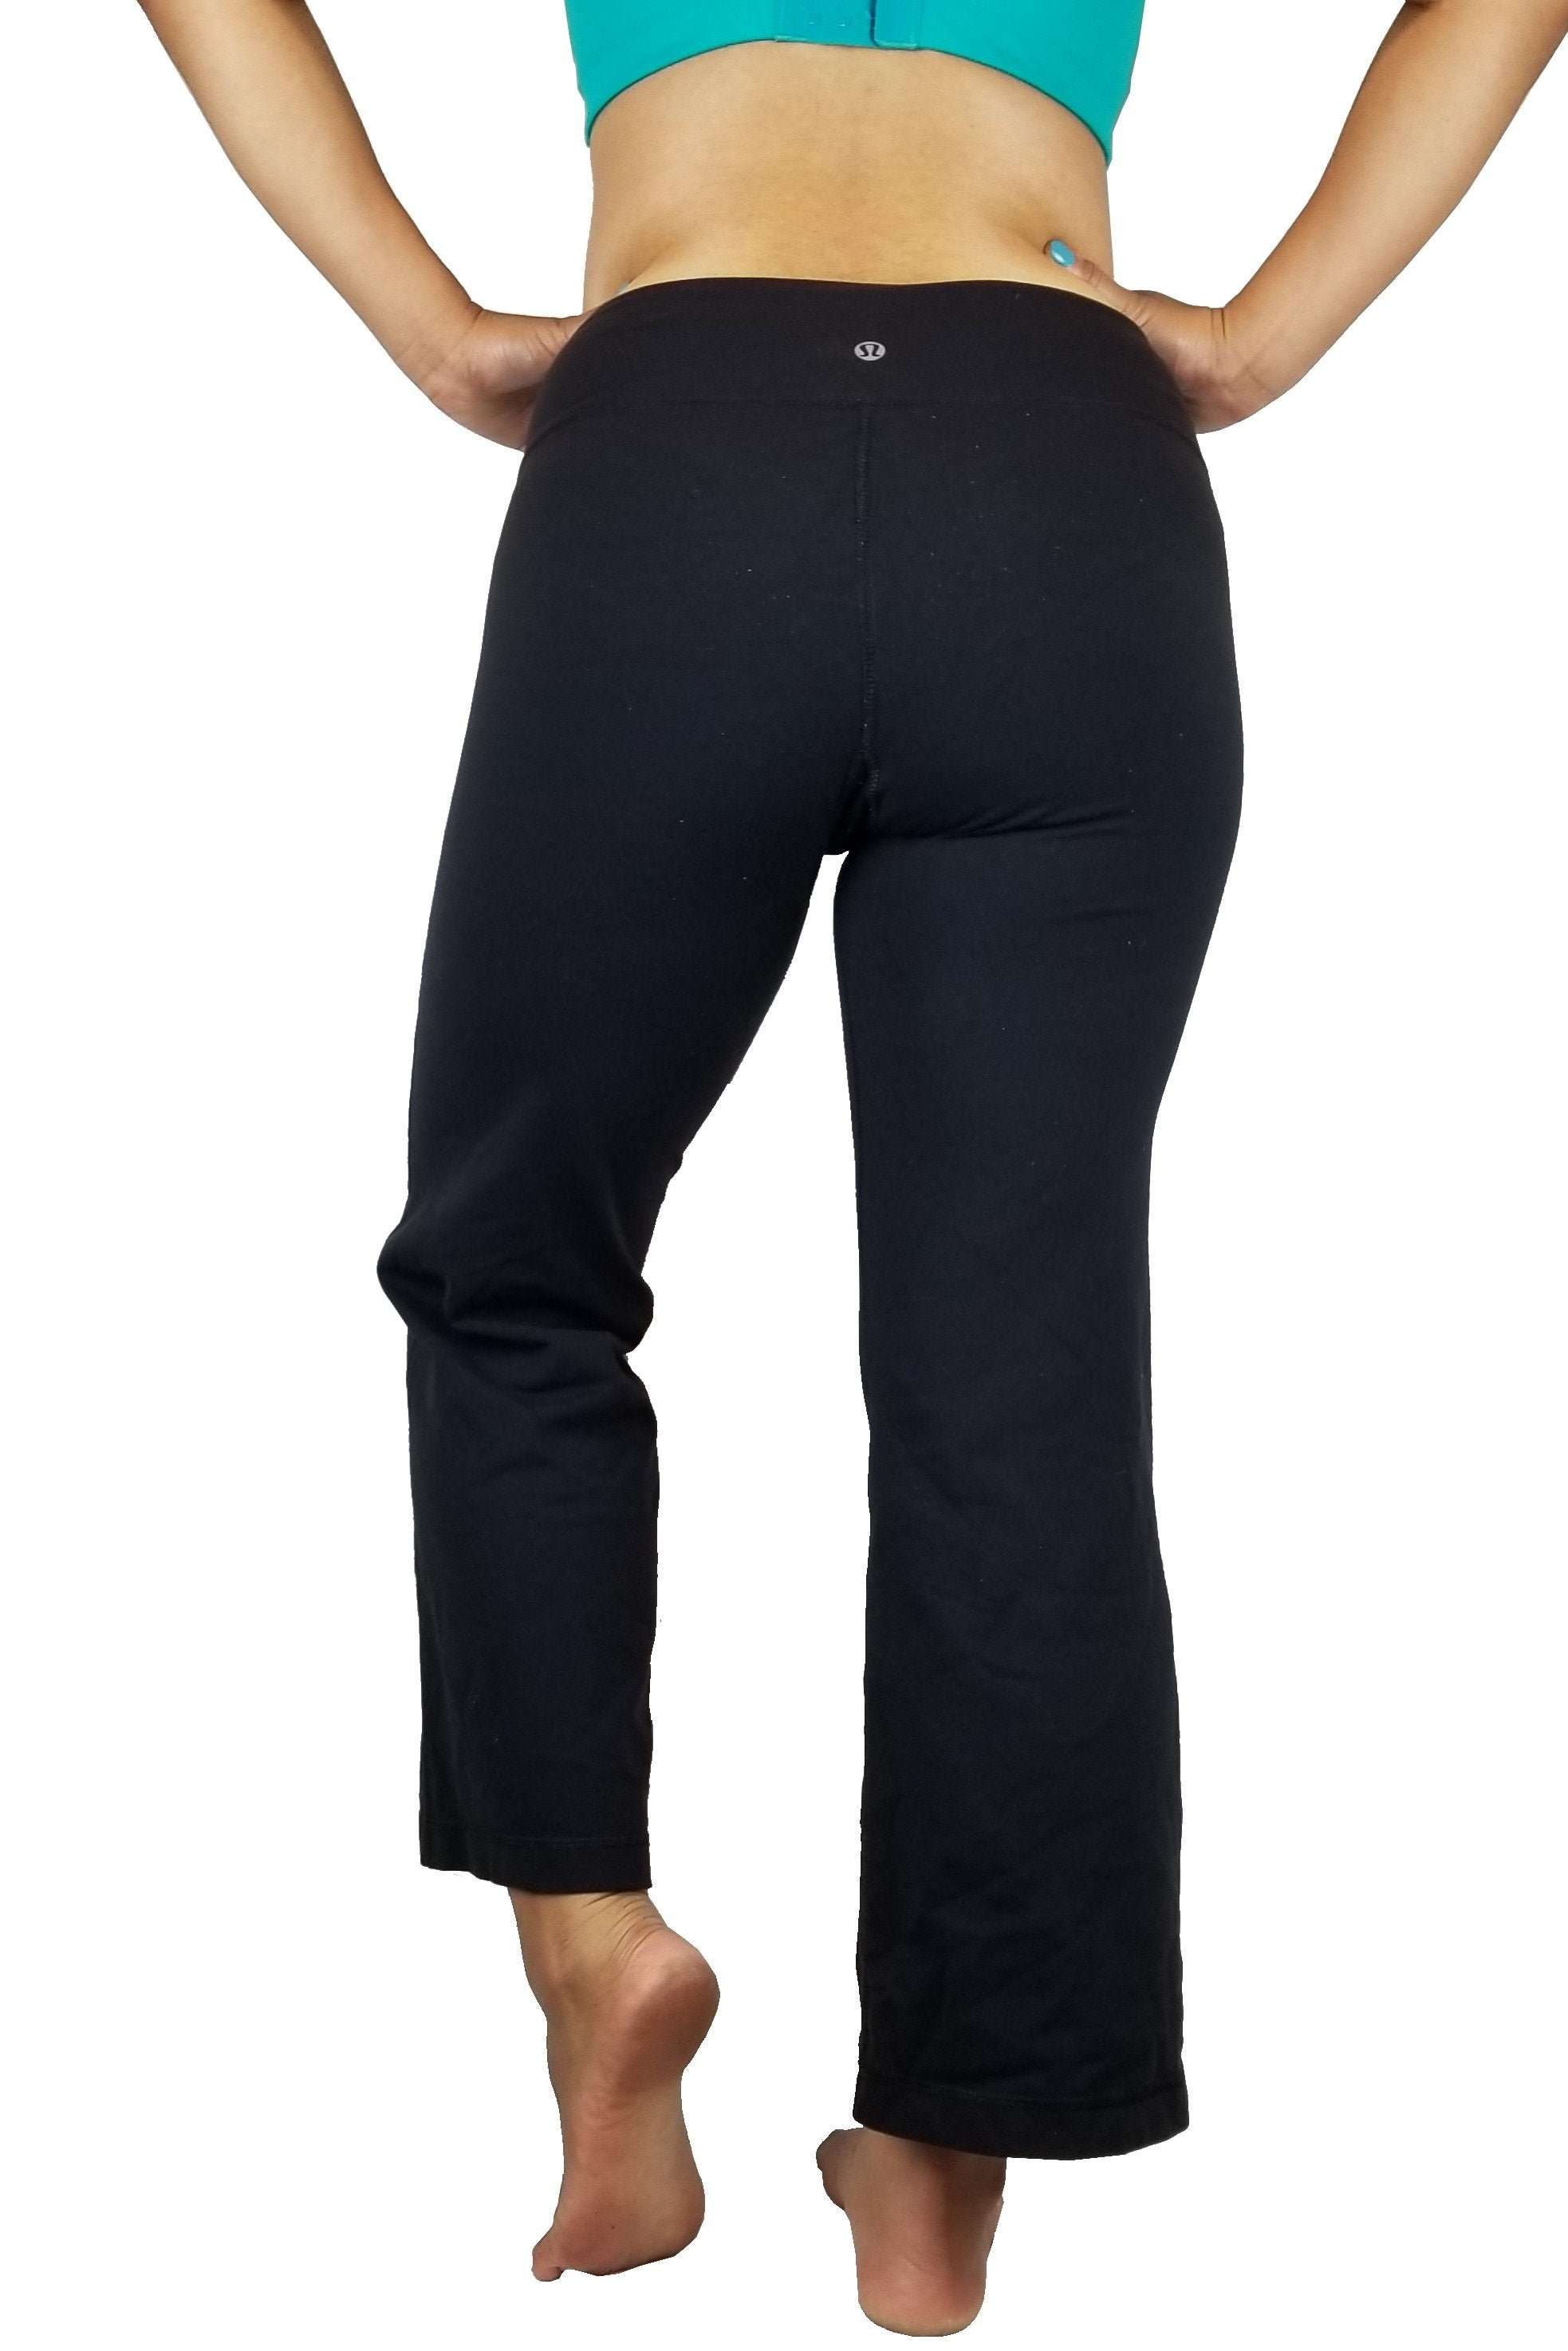 Lululemon Flare yoga pants, Flare design for comfort and breathability. Less of a Vancouver street wear? Lululemon size 4. https://info.lululemon.com/help/size-chart, Pink, Nylon, Lycra, and Spandex, Yoga, yoga pants, women's athletic wear, women's work out clothes, women's comfortable pants, fitness, fit